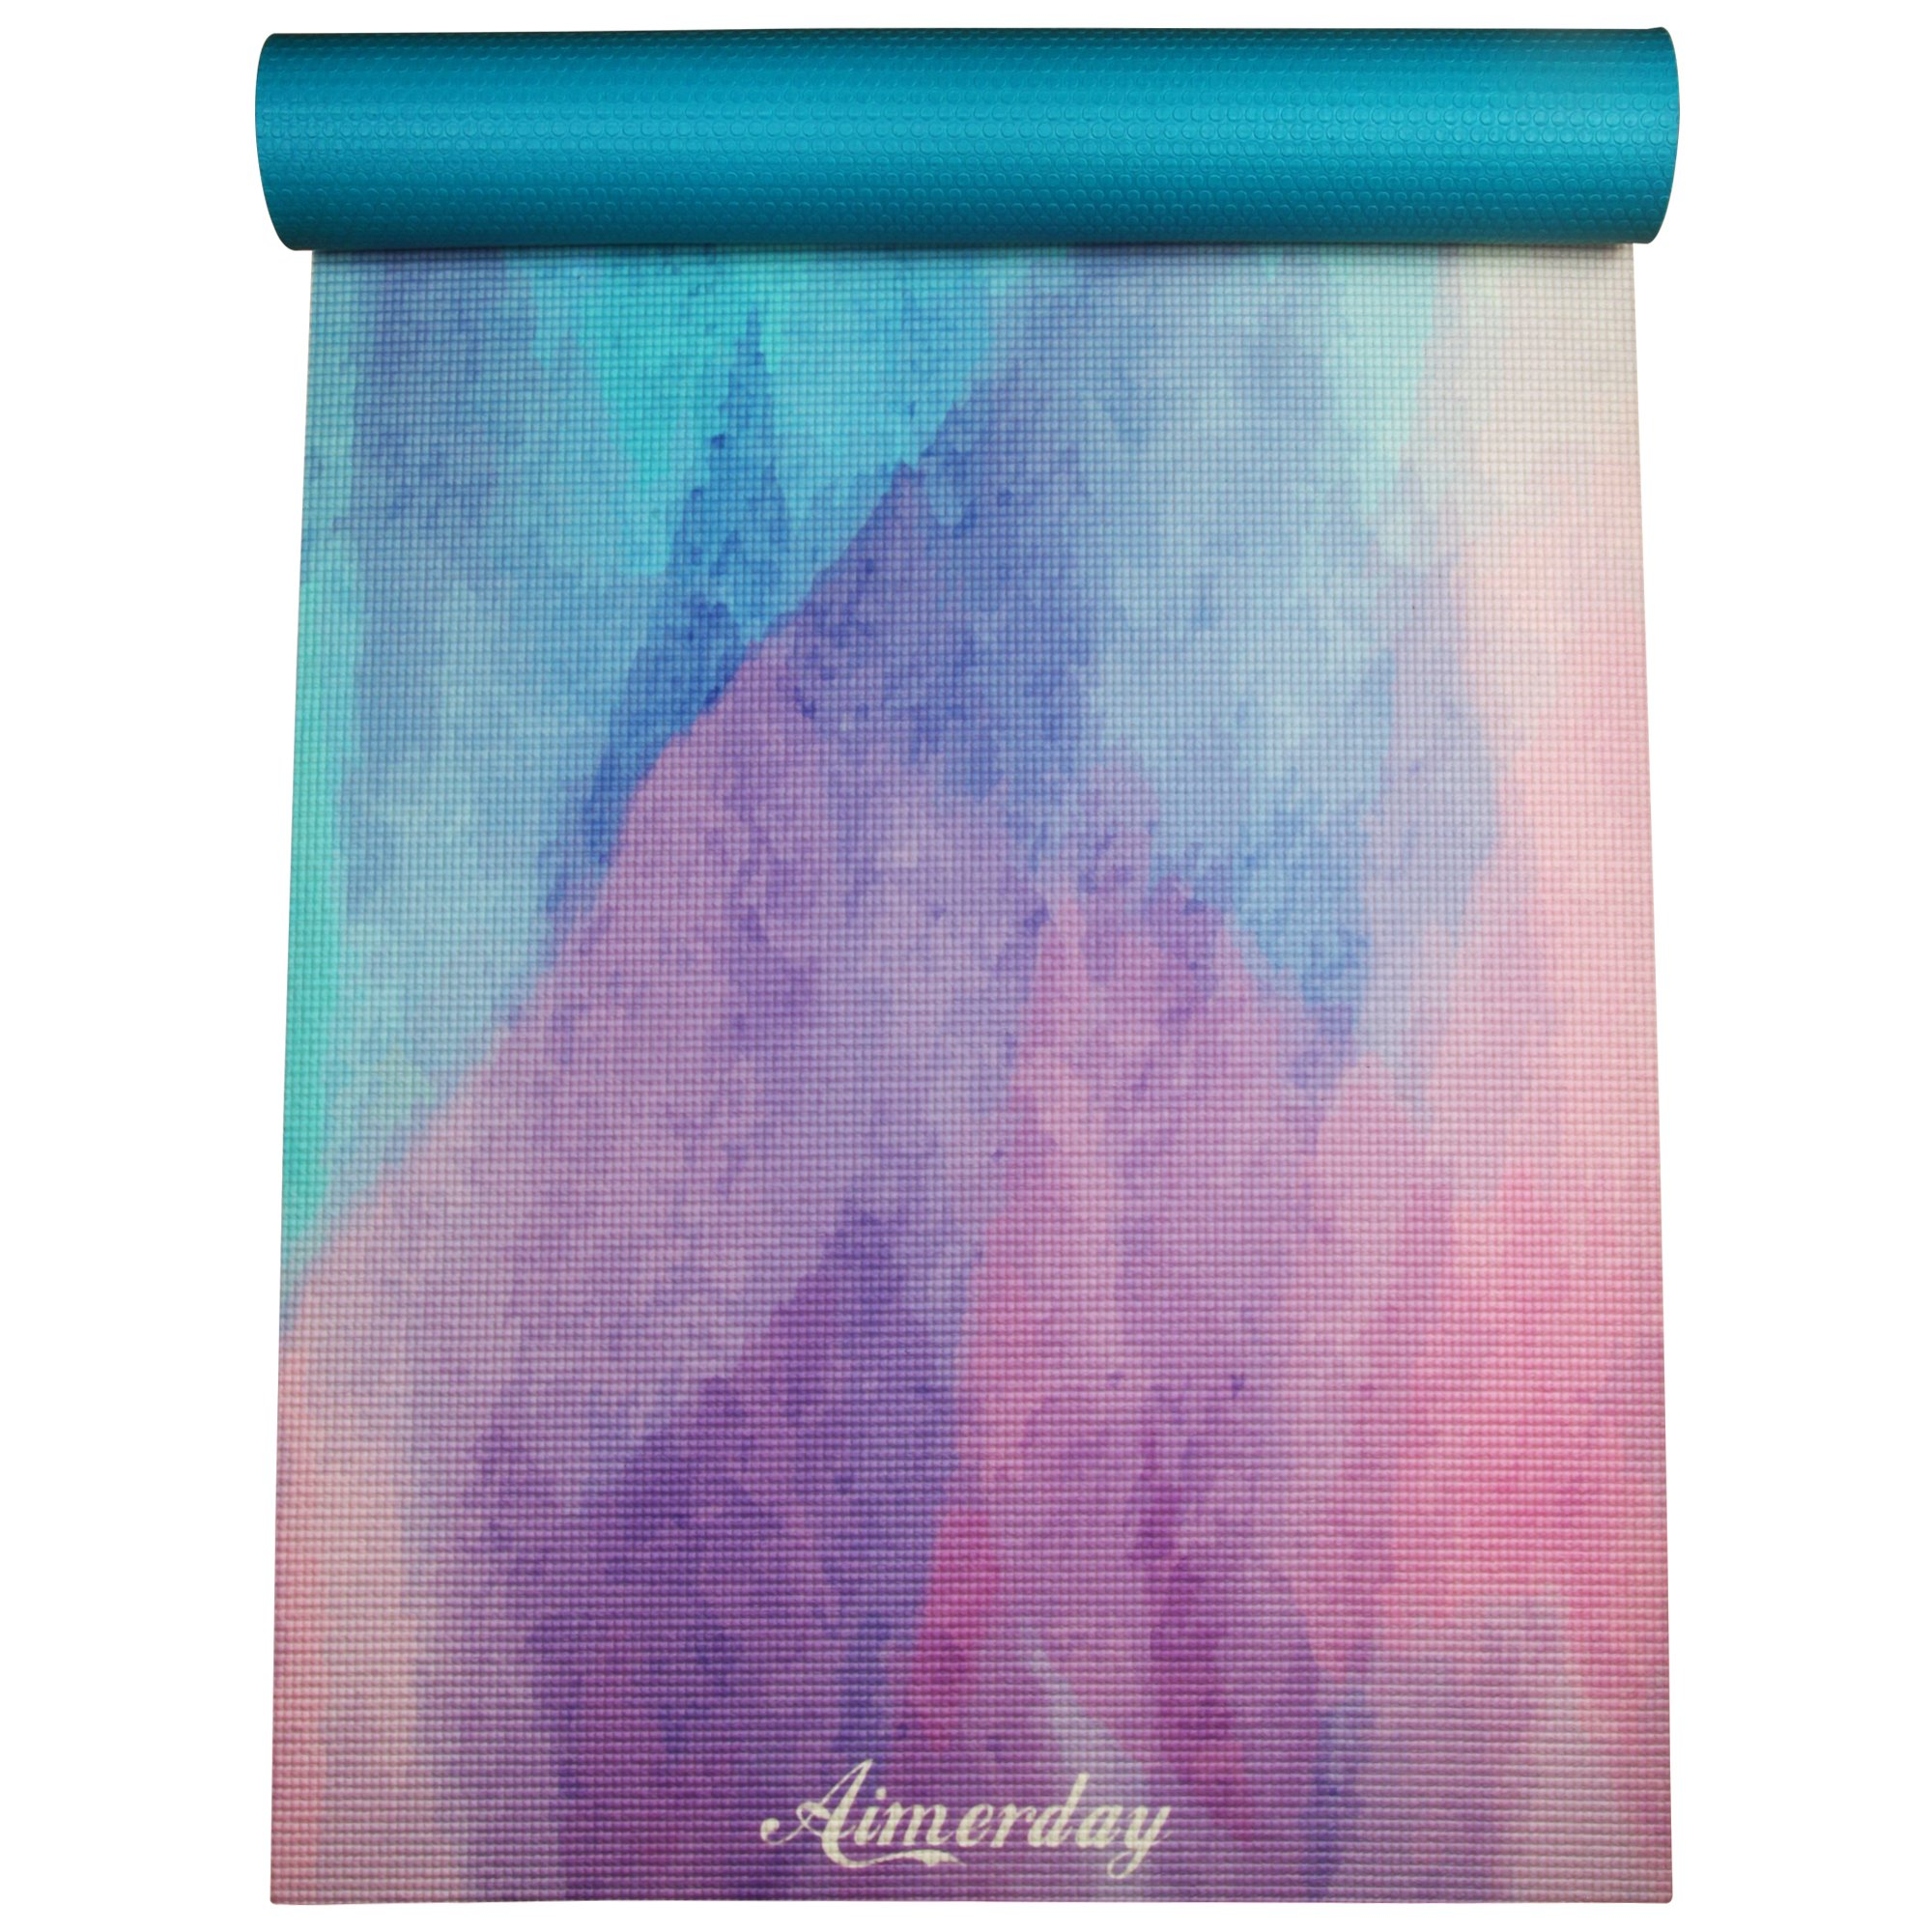 AIMERDAY Premium Printed Yoga Mat 72-Inch Long 1/4'' Extra Thick High Density Eco-Friendly Non Slip Exercise Mats for Pilates, Fitness, Hot Yoga with Carrying Strap and Travel Bag